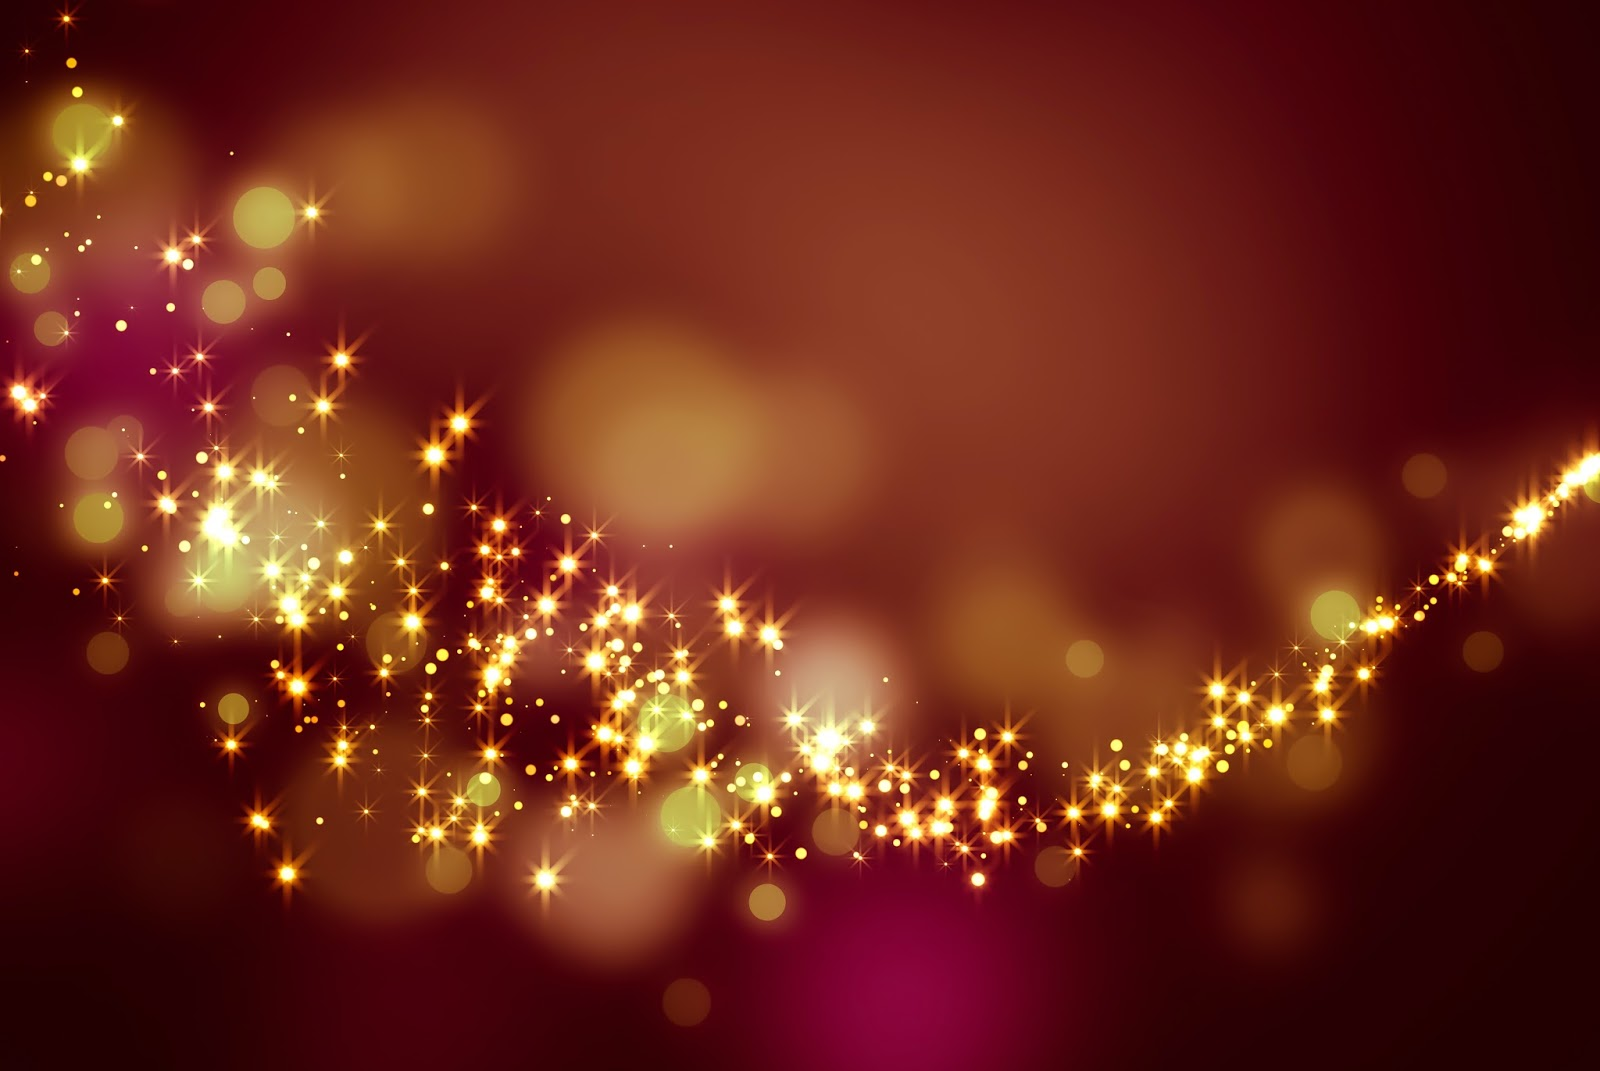 Christmas Magic Hd Wallpapers: The Rainbow Tales: Magical Mystical Moods